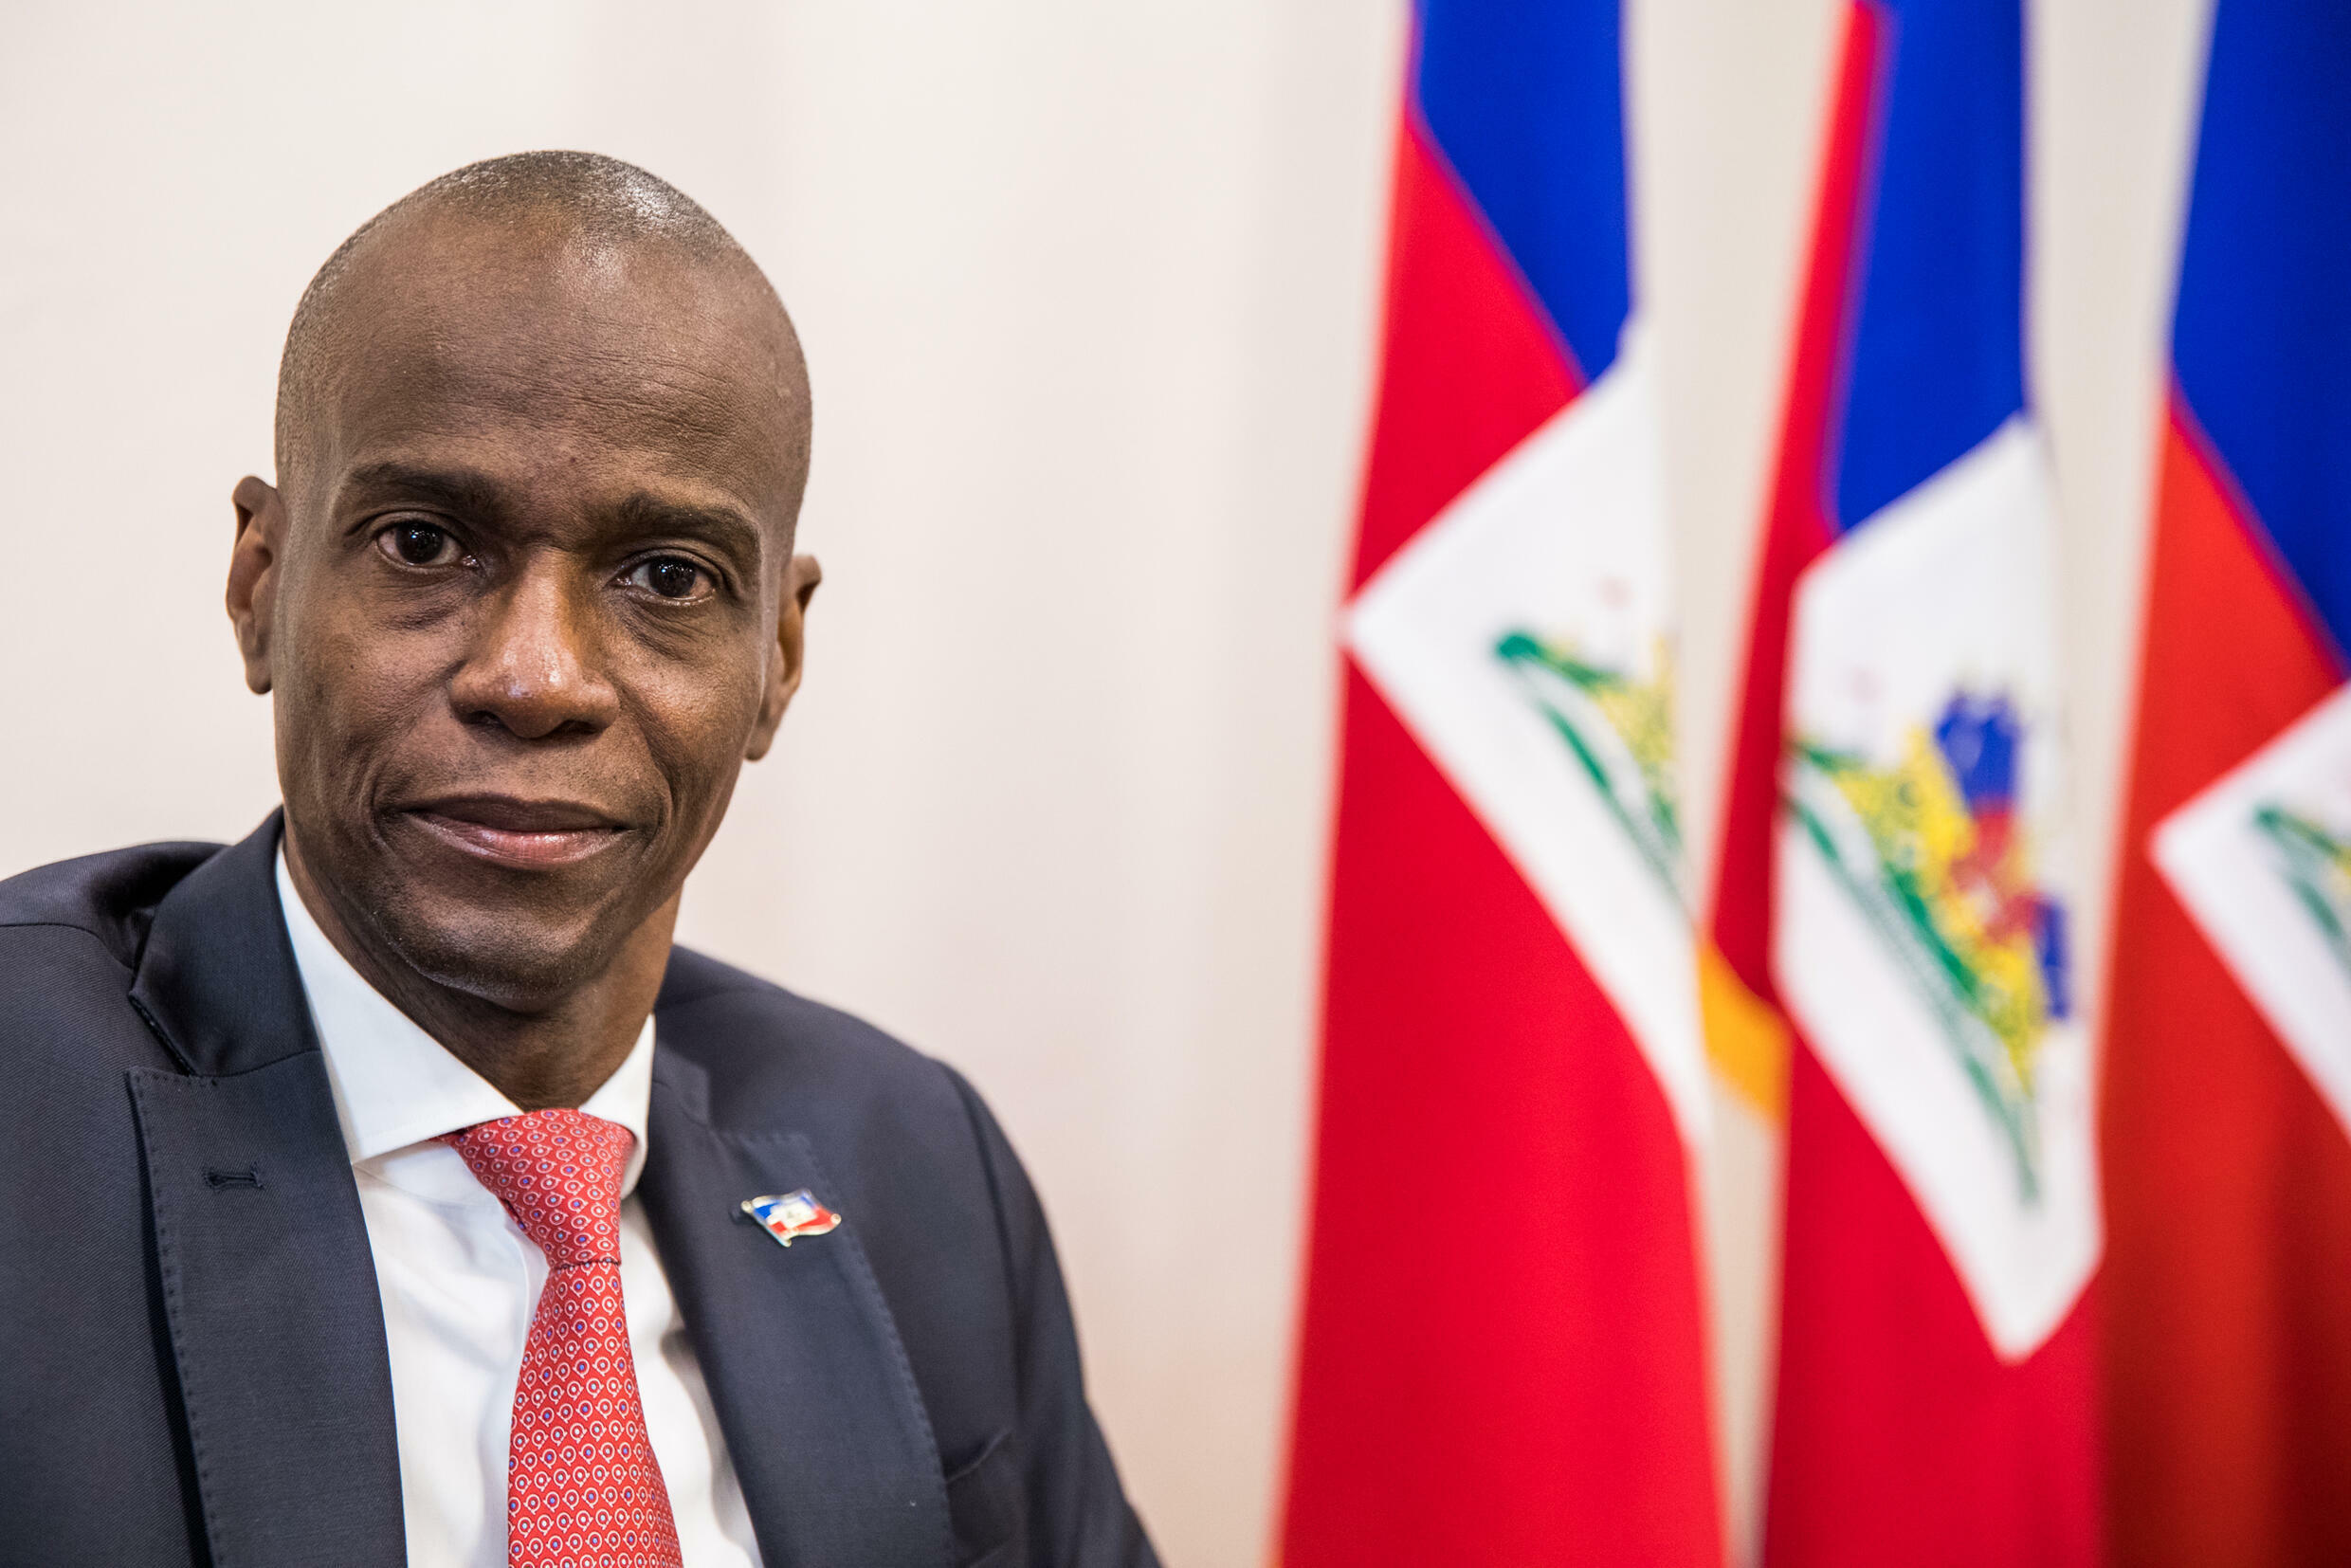 Haitian President Jovenel Moise, seen here in 2019, was shot dead in his home in Port-au-Prince -- it is unclear who could next lead the country